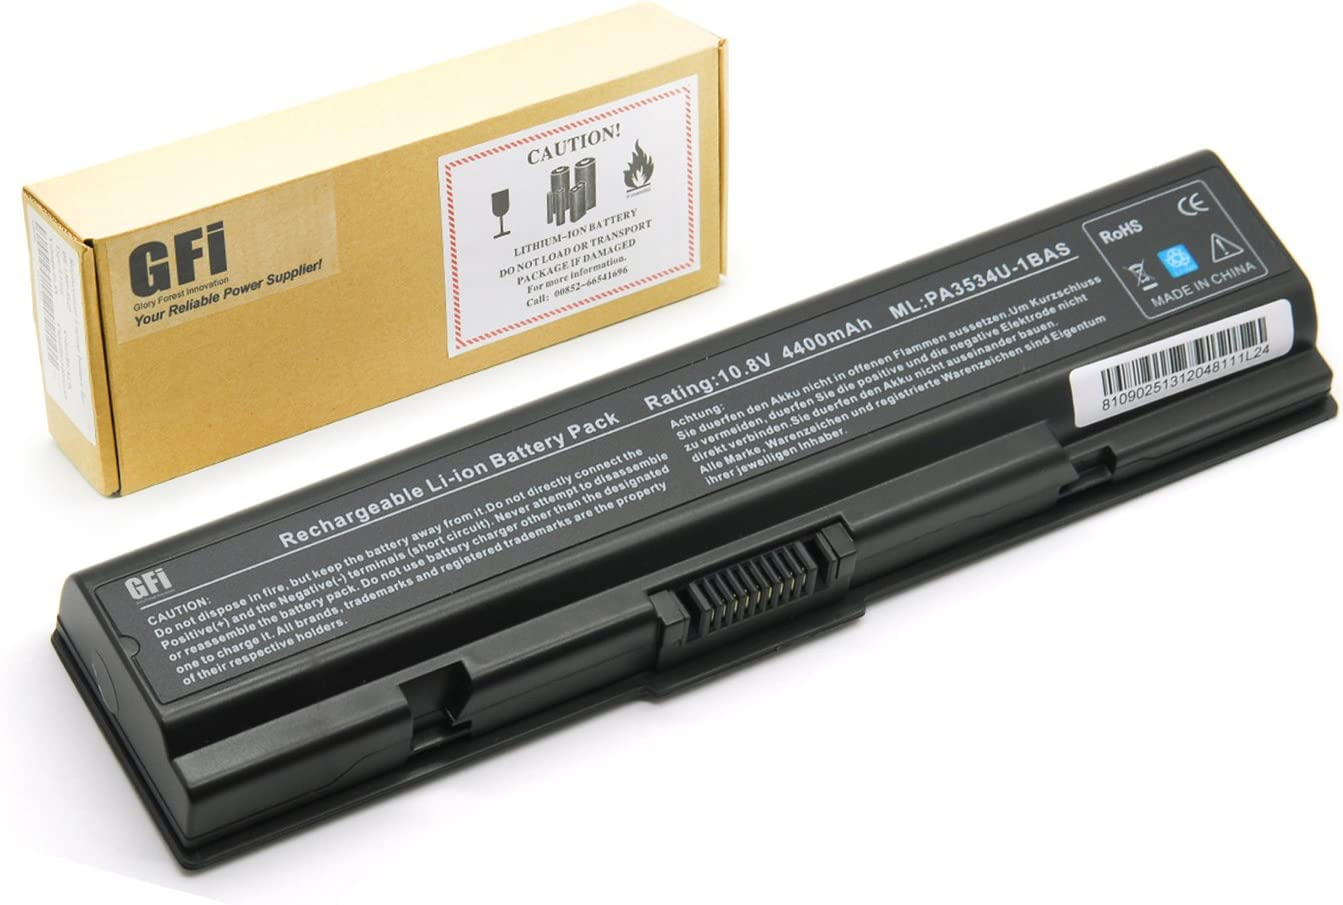 New Replacement Li Ion Laptop Battery For Toshiba Pa3534u 1brs Amazon Co Uk Computers Accessories